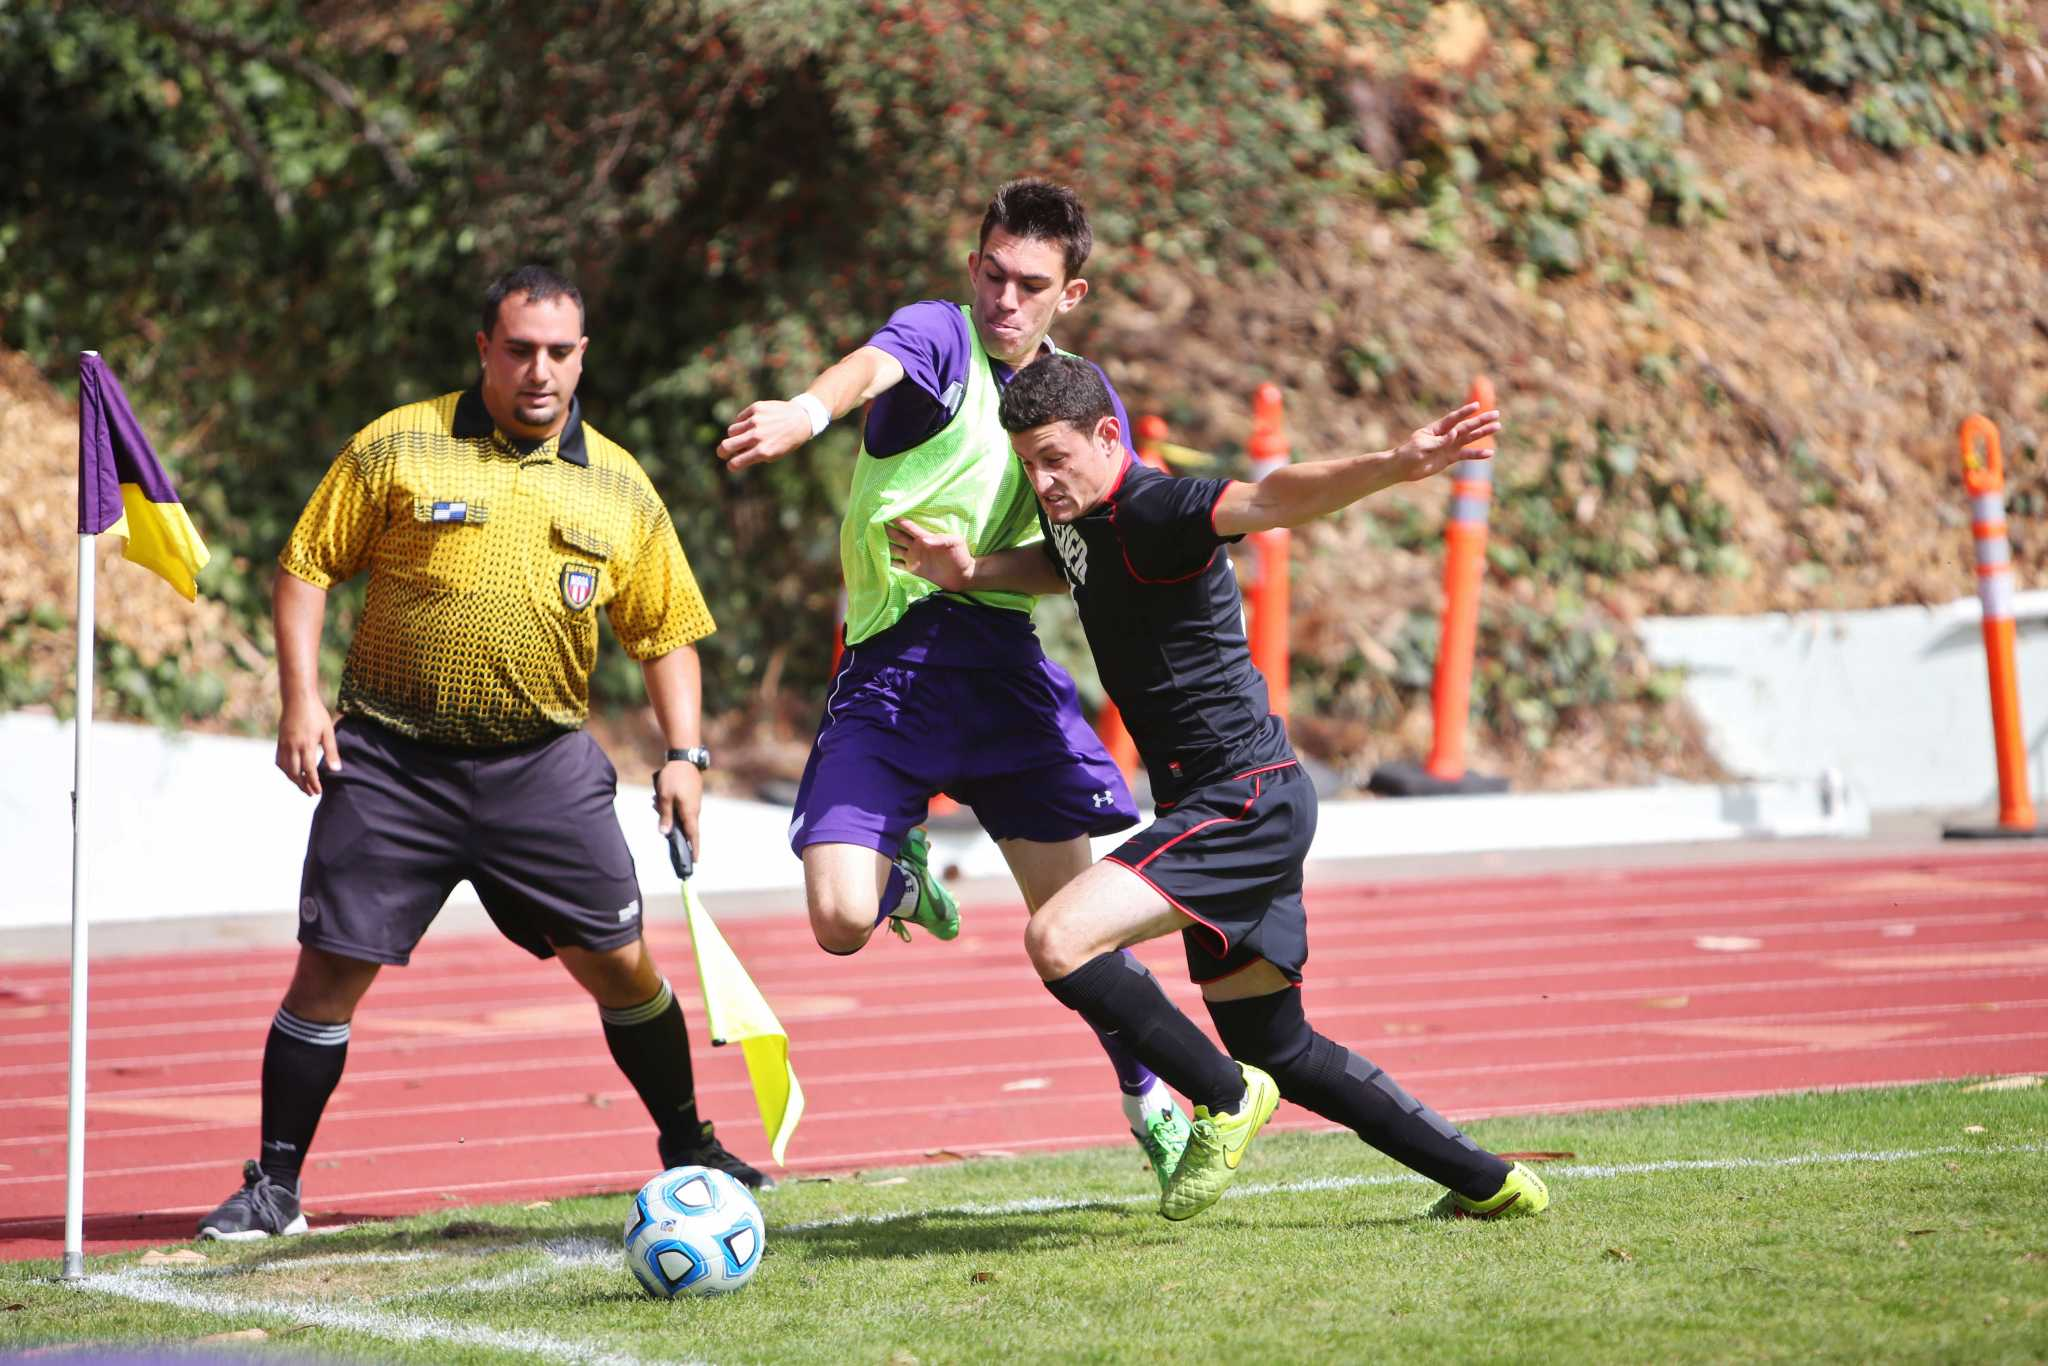 SF State Gator midfielder Sam Merritt, #10, fights for a ball in the corner against Cal State East Bay player Steven Henry, #25, at Cox Stadium on Sunday, Sept. 28, 2014. Sara Gobets / Xpress.